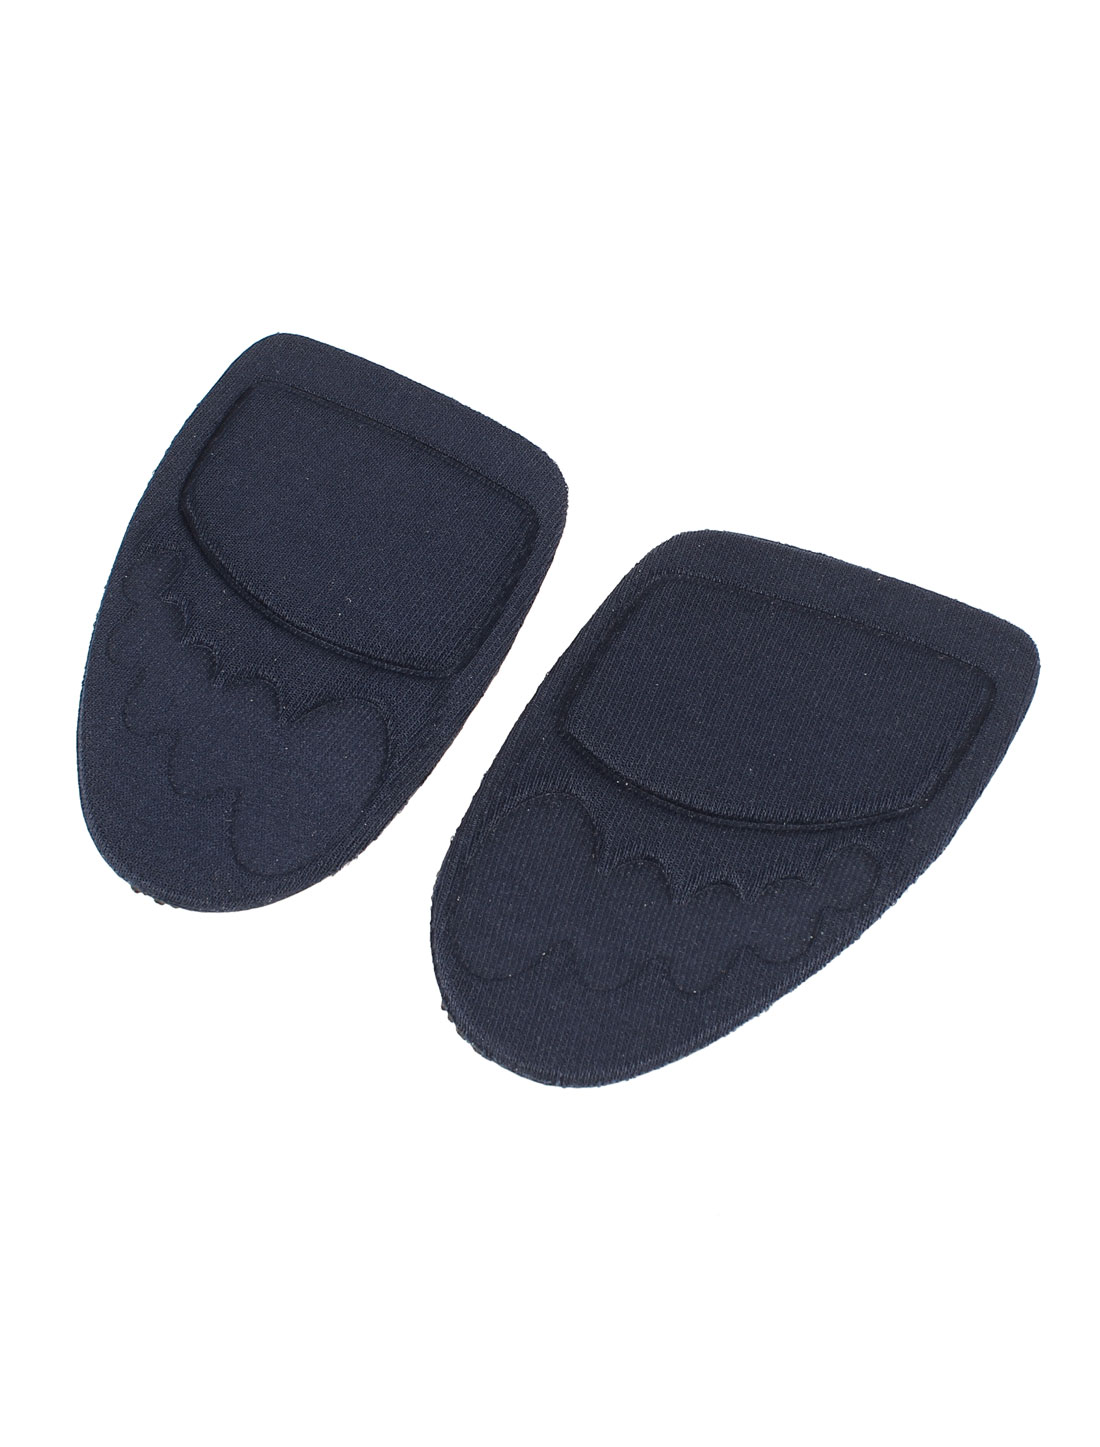 Pair Dark Blue Polyester High Heels Shoes Pure Adhesive Gel Front Insloes Pads